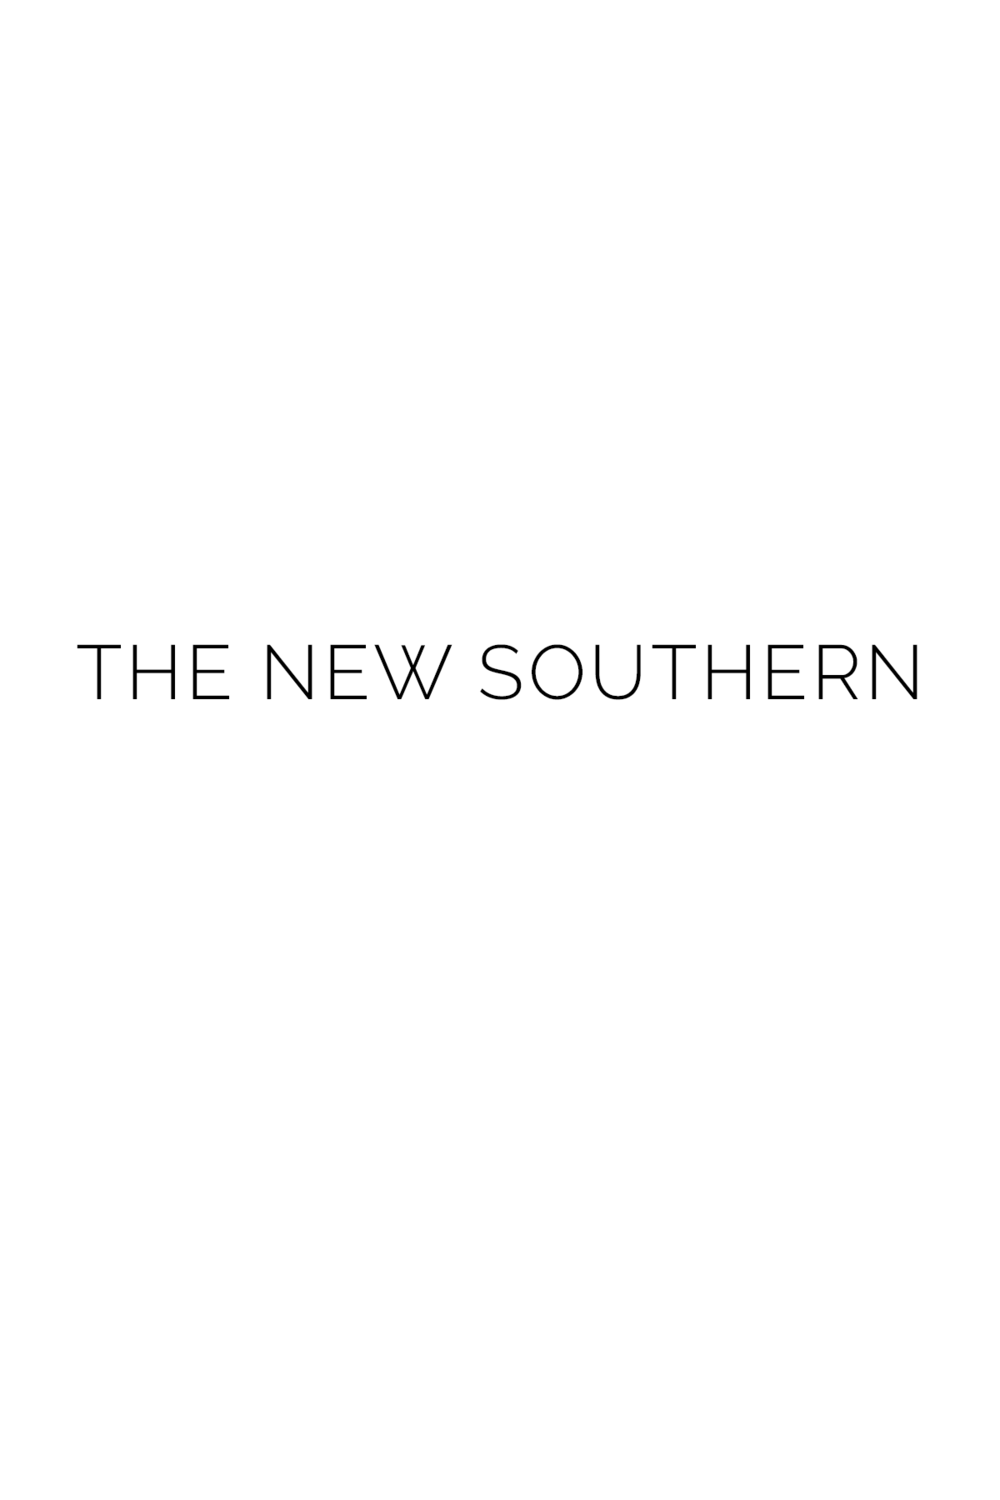 Alyssa Rosenheck The New Southern with TA Lorton Tulsa Exterior Elevation ©AlyssaRosenheck2017